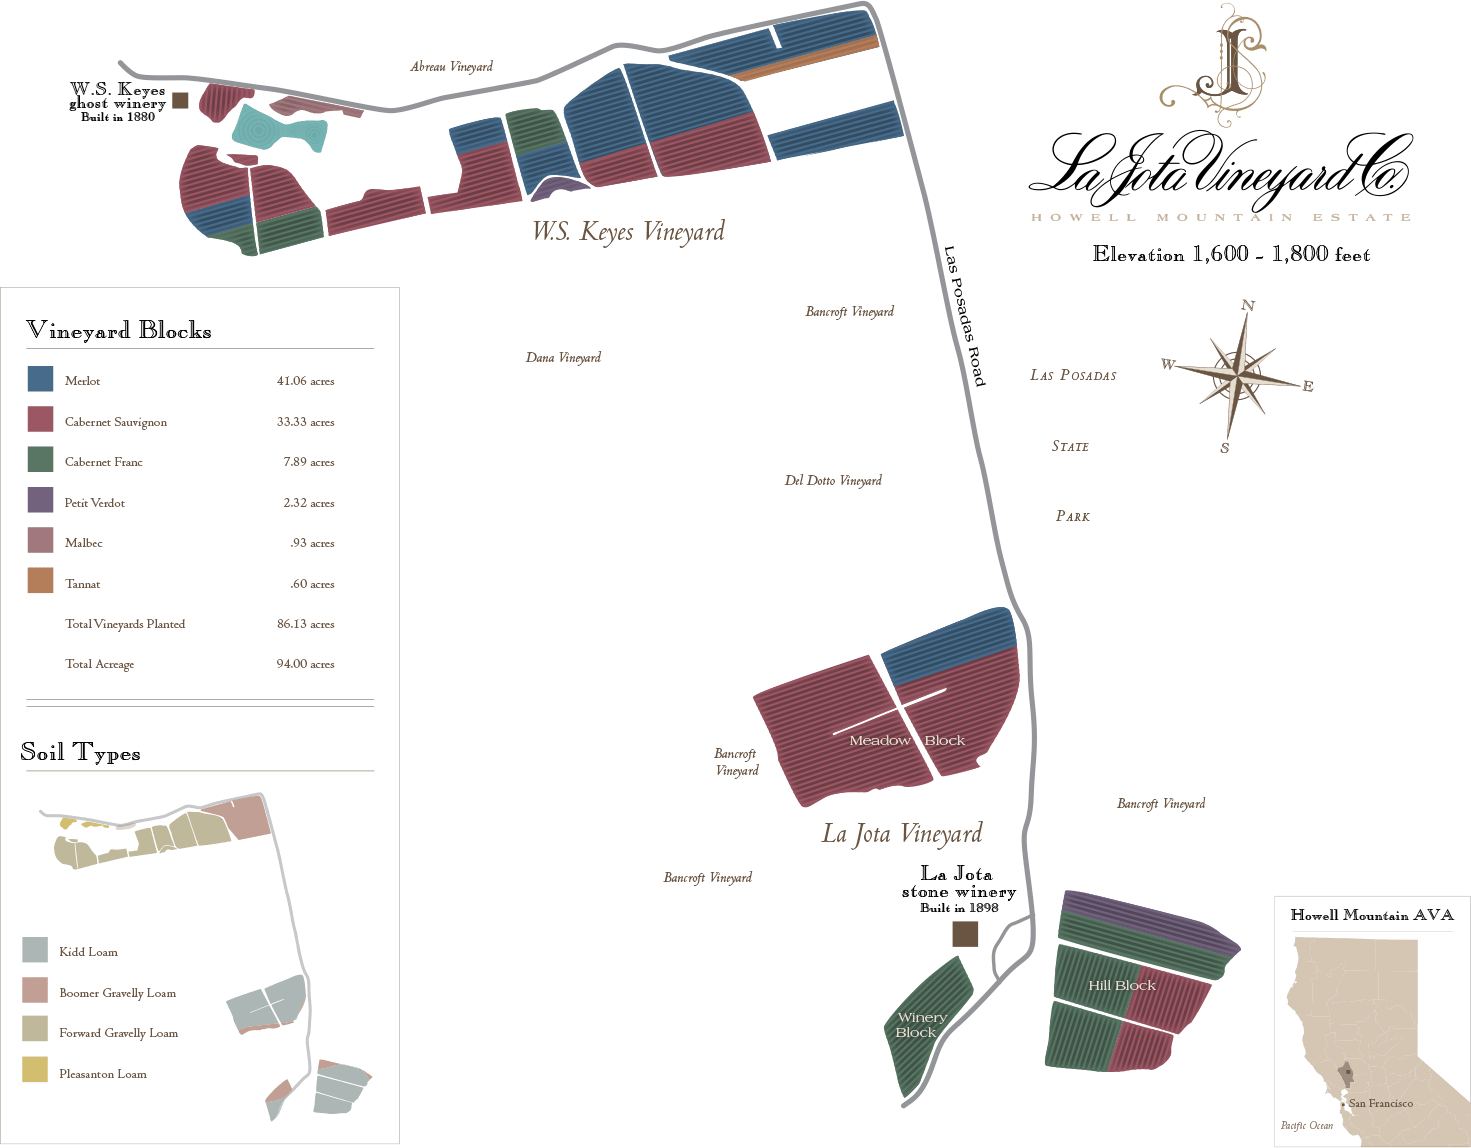 Map of La Jota Vineyards Wine Blocks